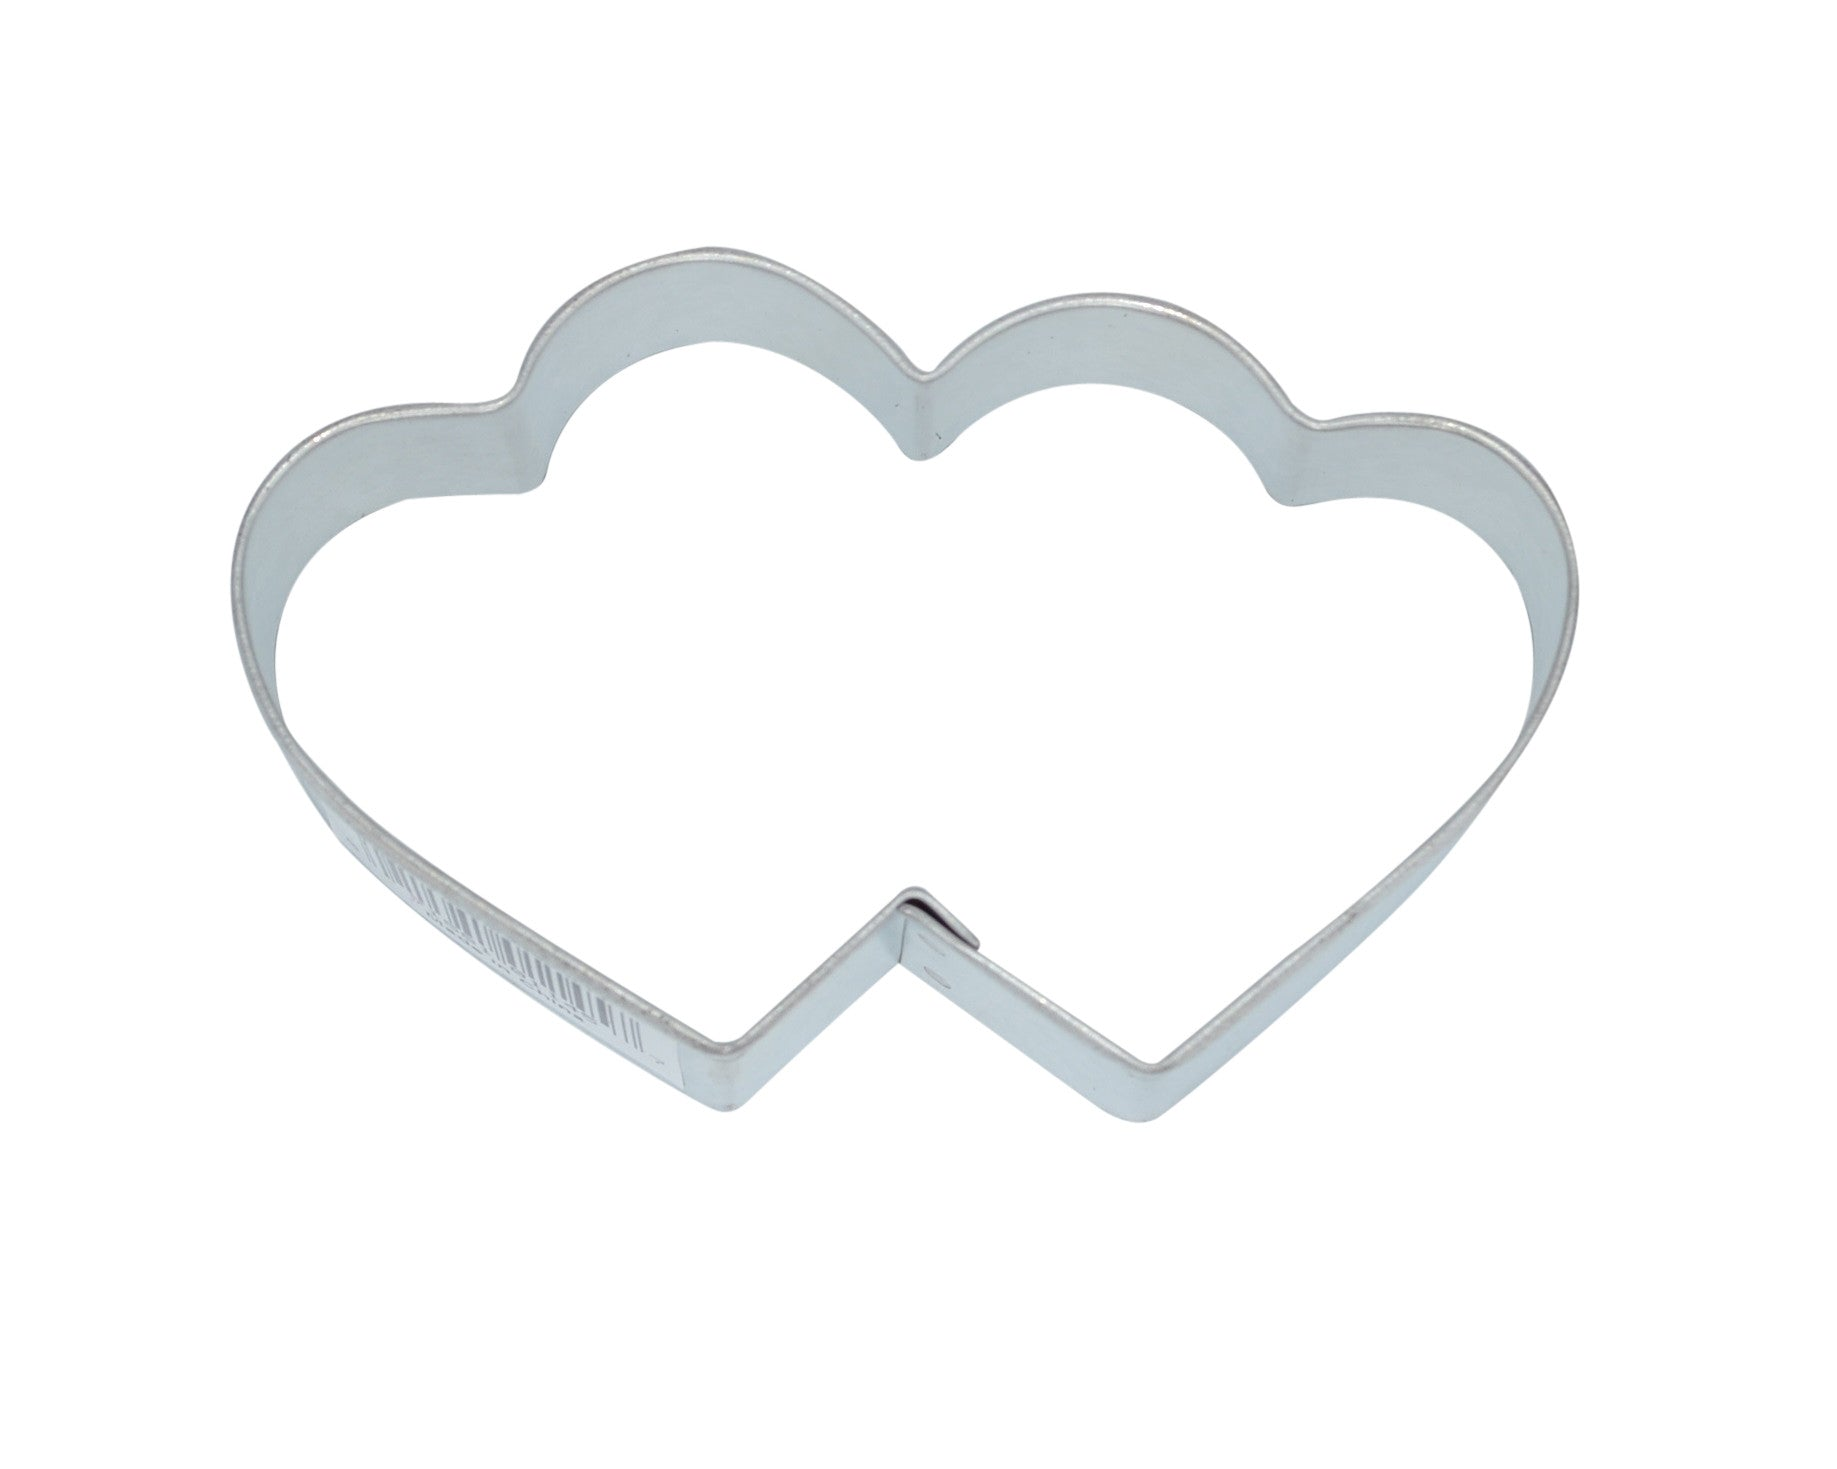 Heart Double 9.5cm Cookie Cutter-Cookie Cutter Shop Australia